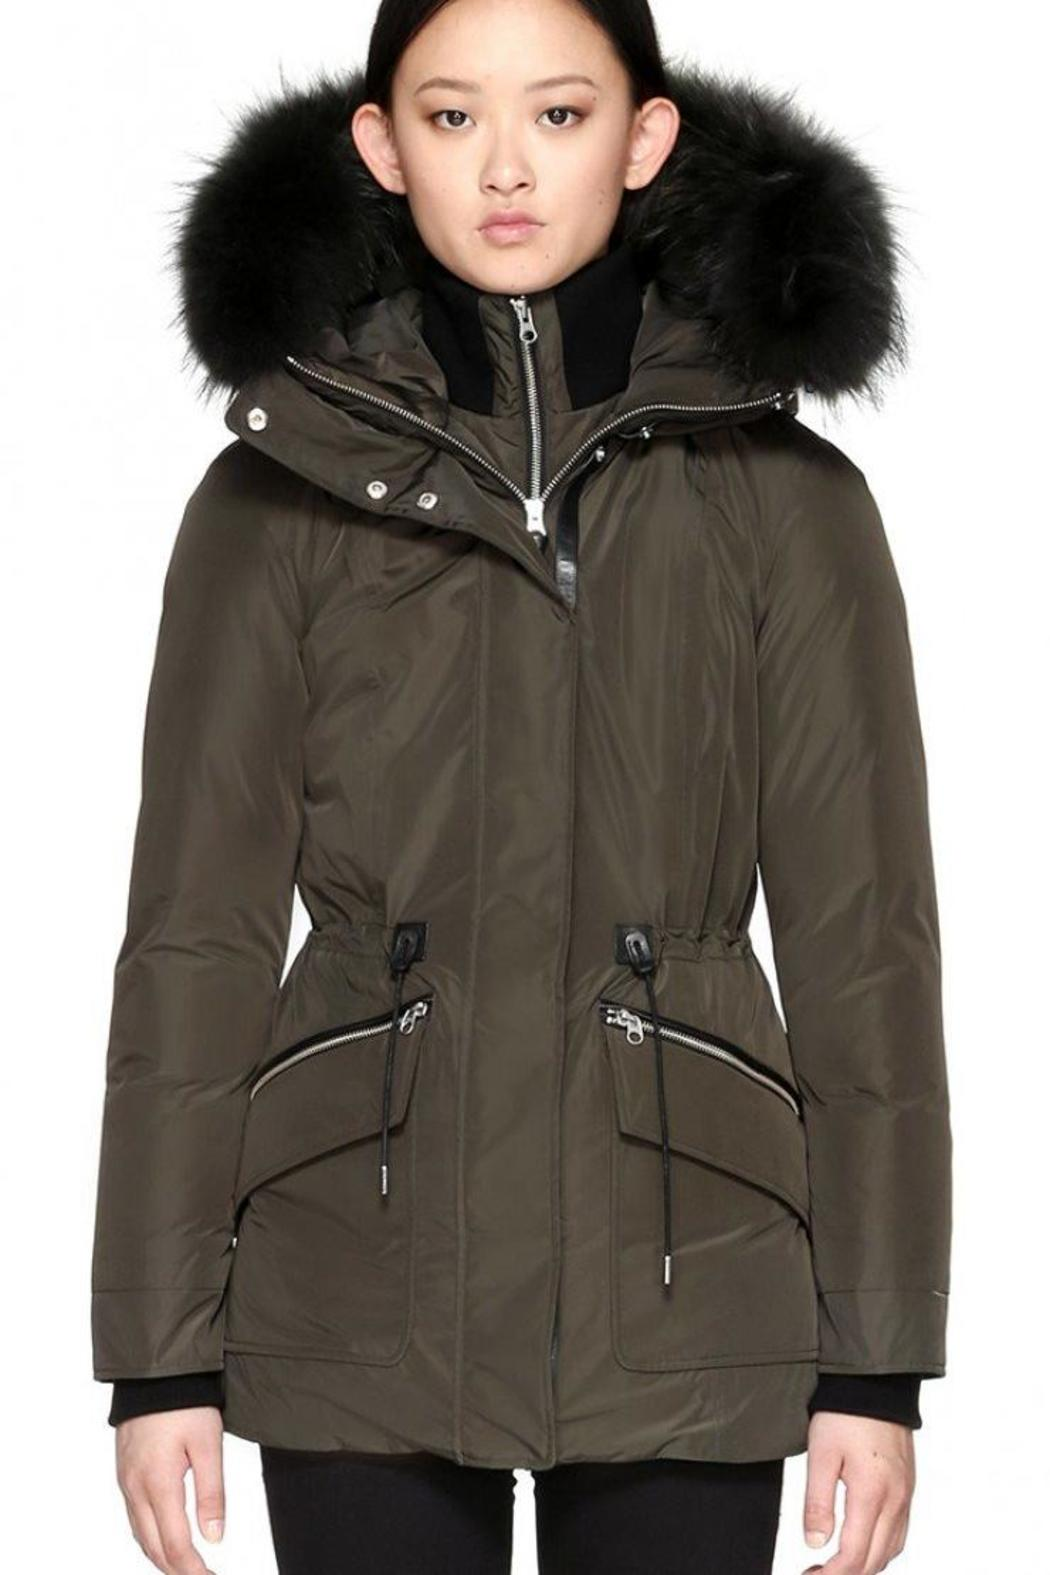 62c00890e Mackage Kathryn Down Jacket from Canada by Swartz Fine Fashions ...